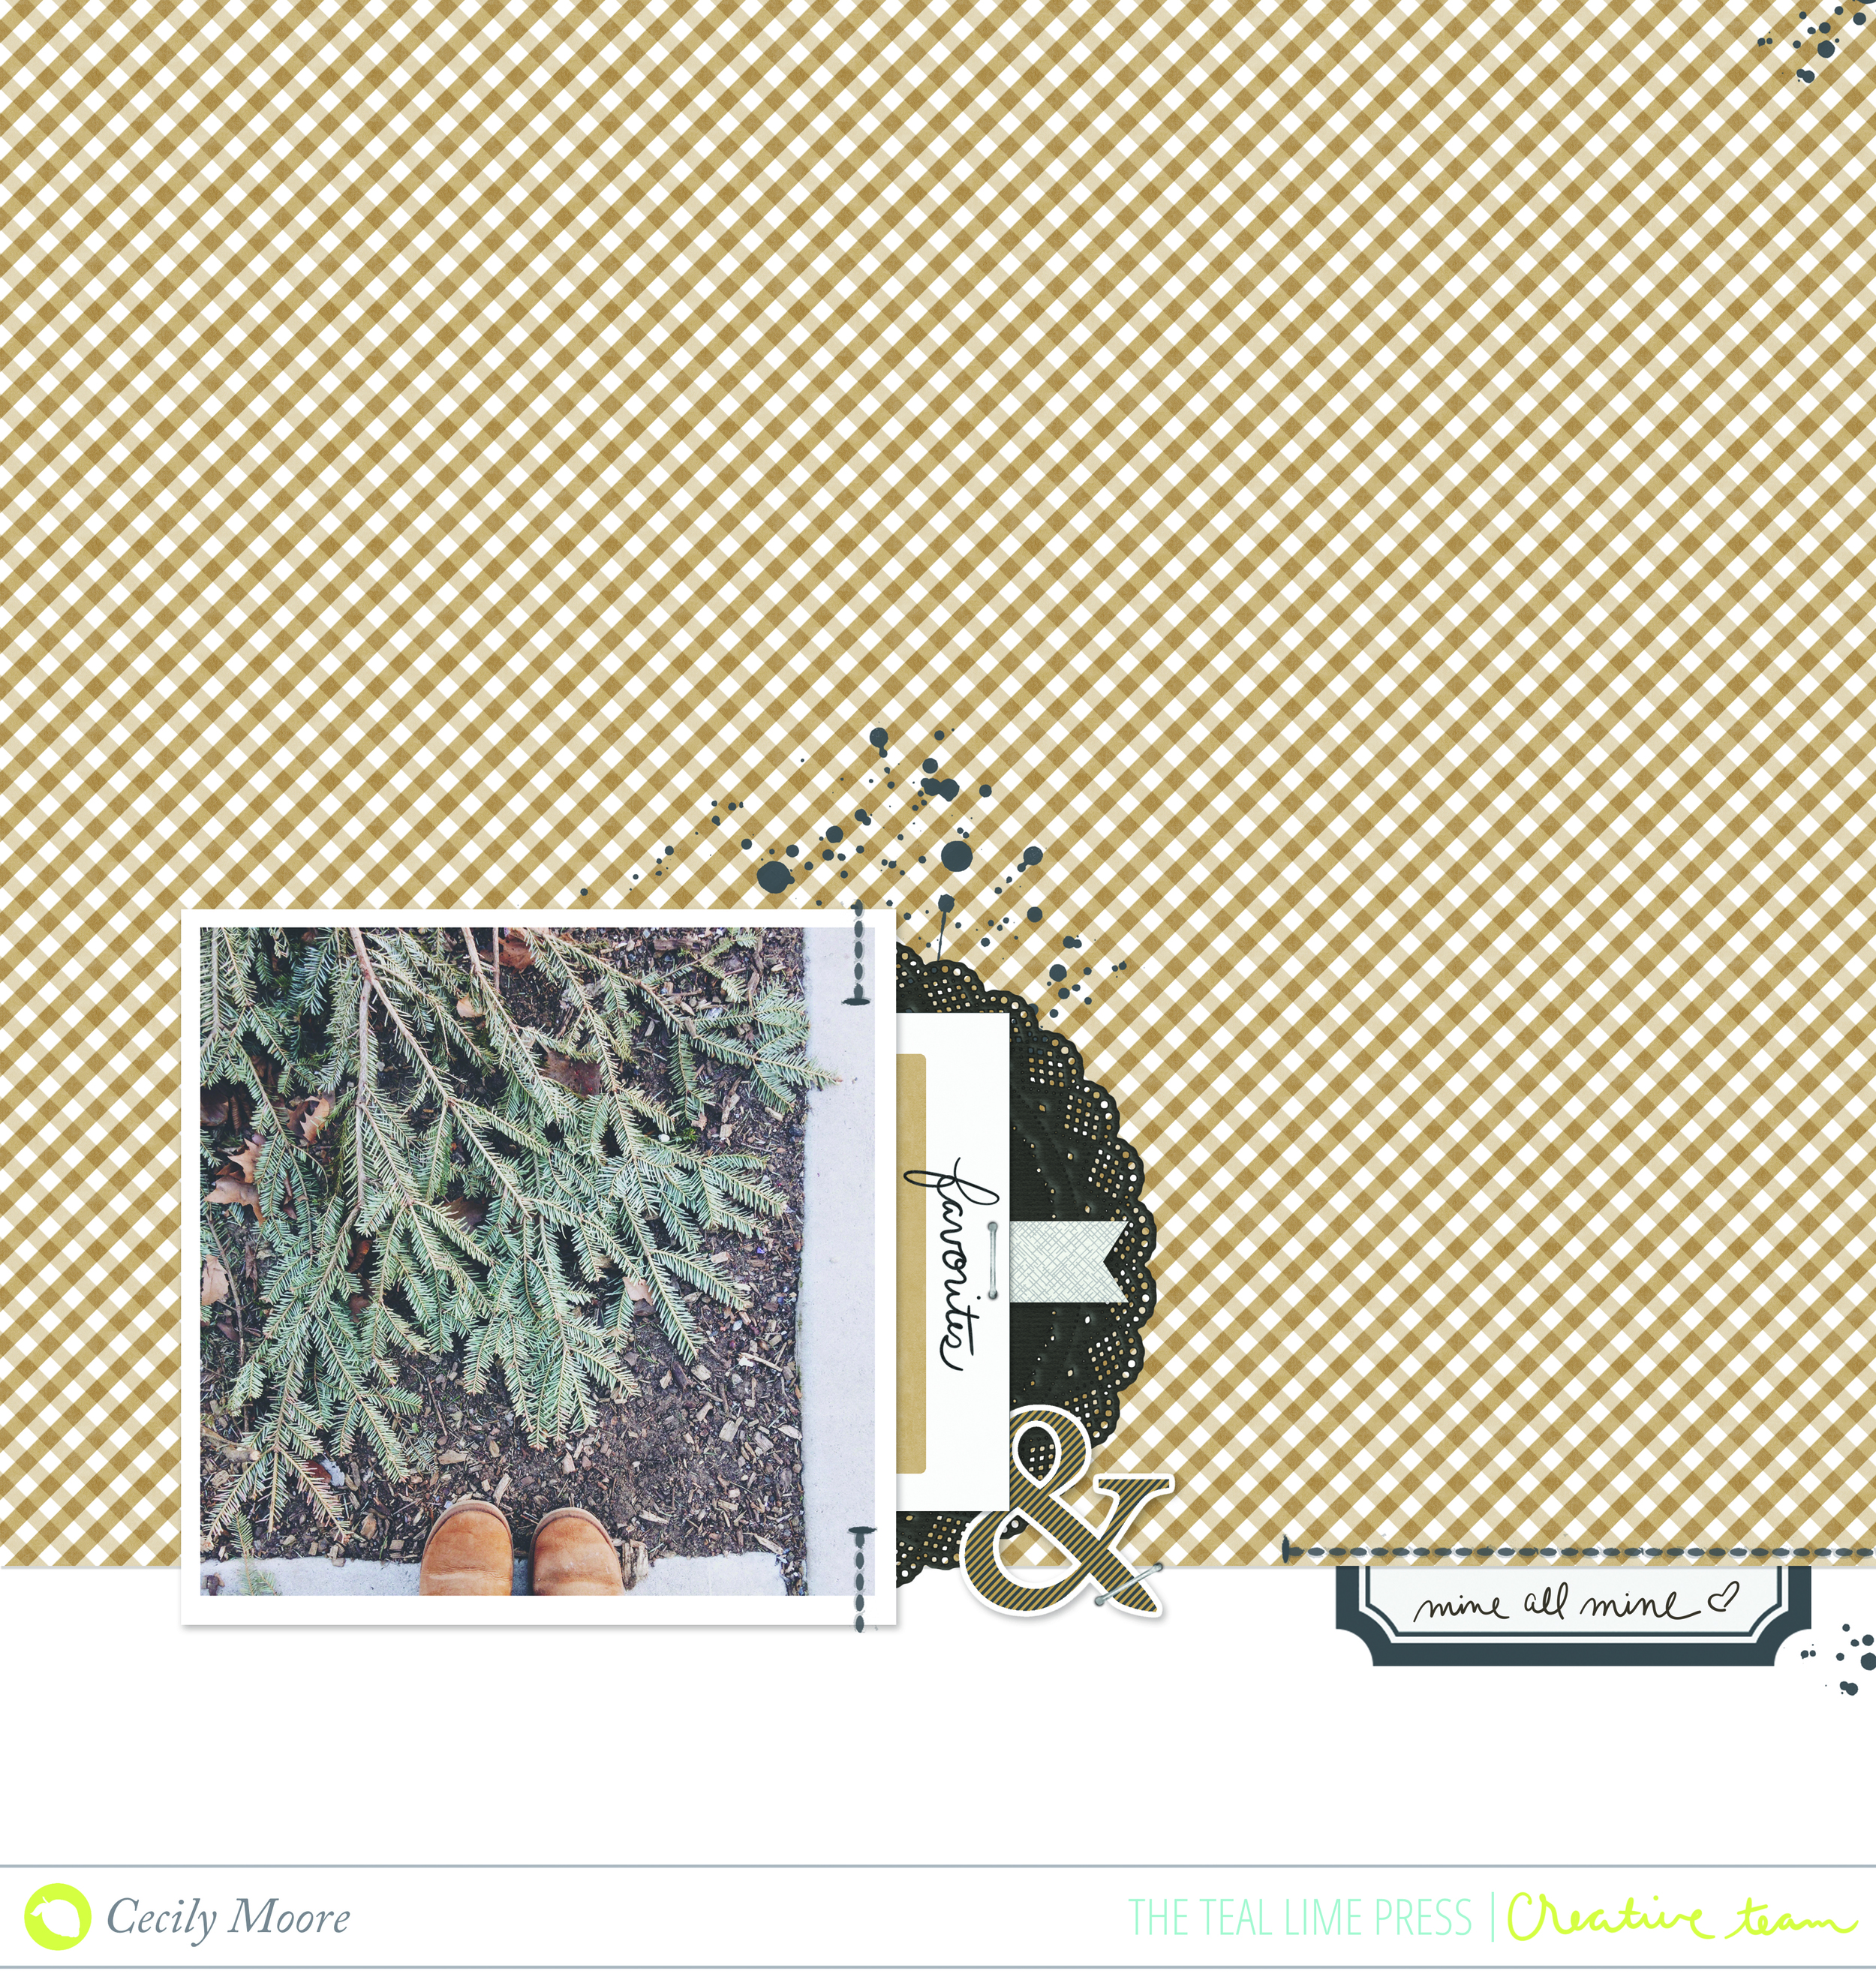 WEEKLY PAGE SKETCH WITH 'FAVORITE' SCRAPBOOK LAYOUT | THE PAPER CURATOR